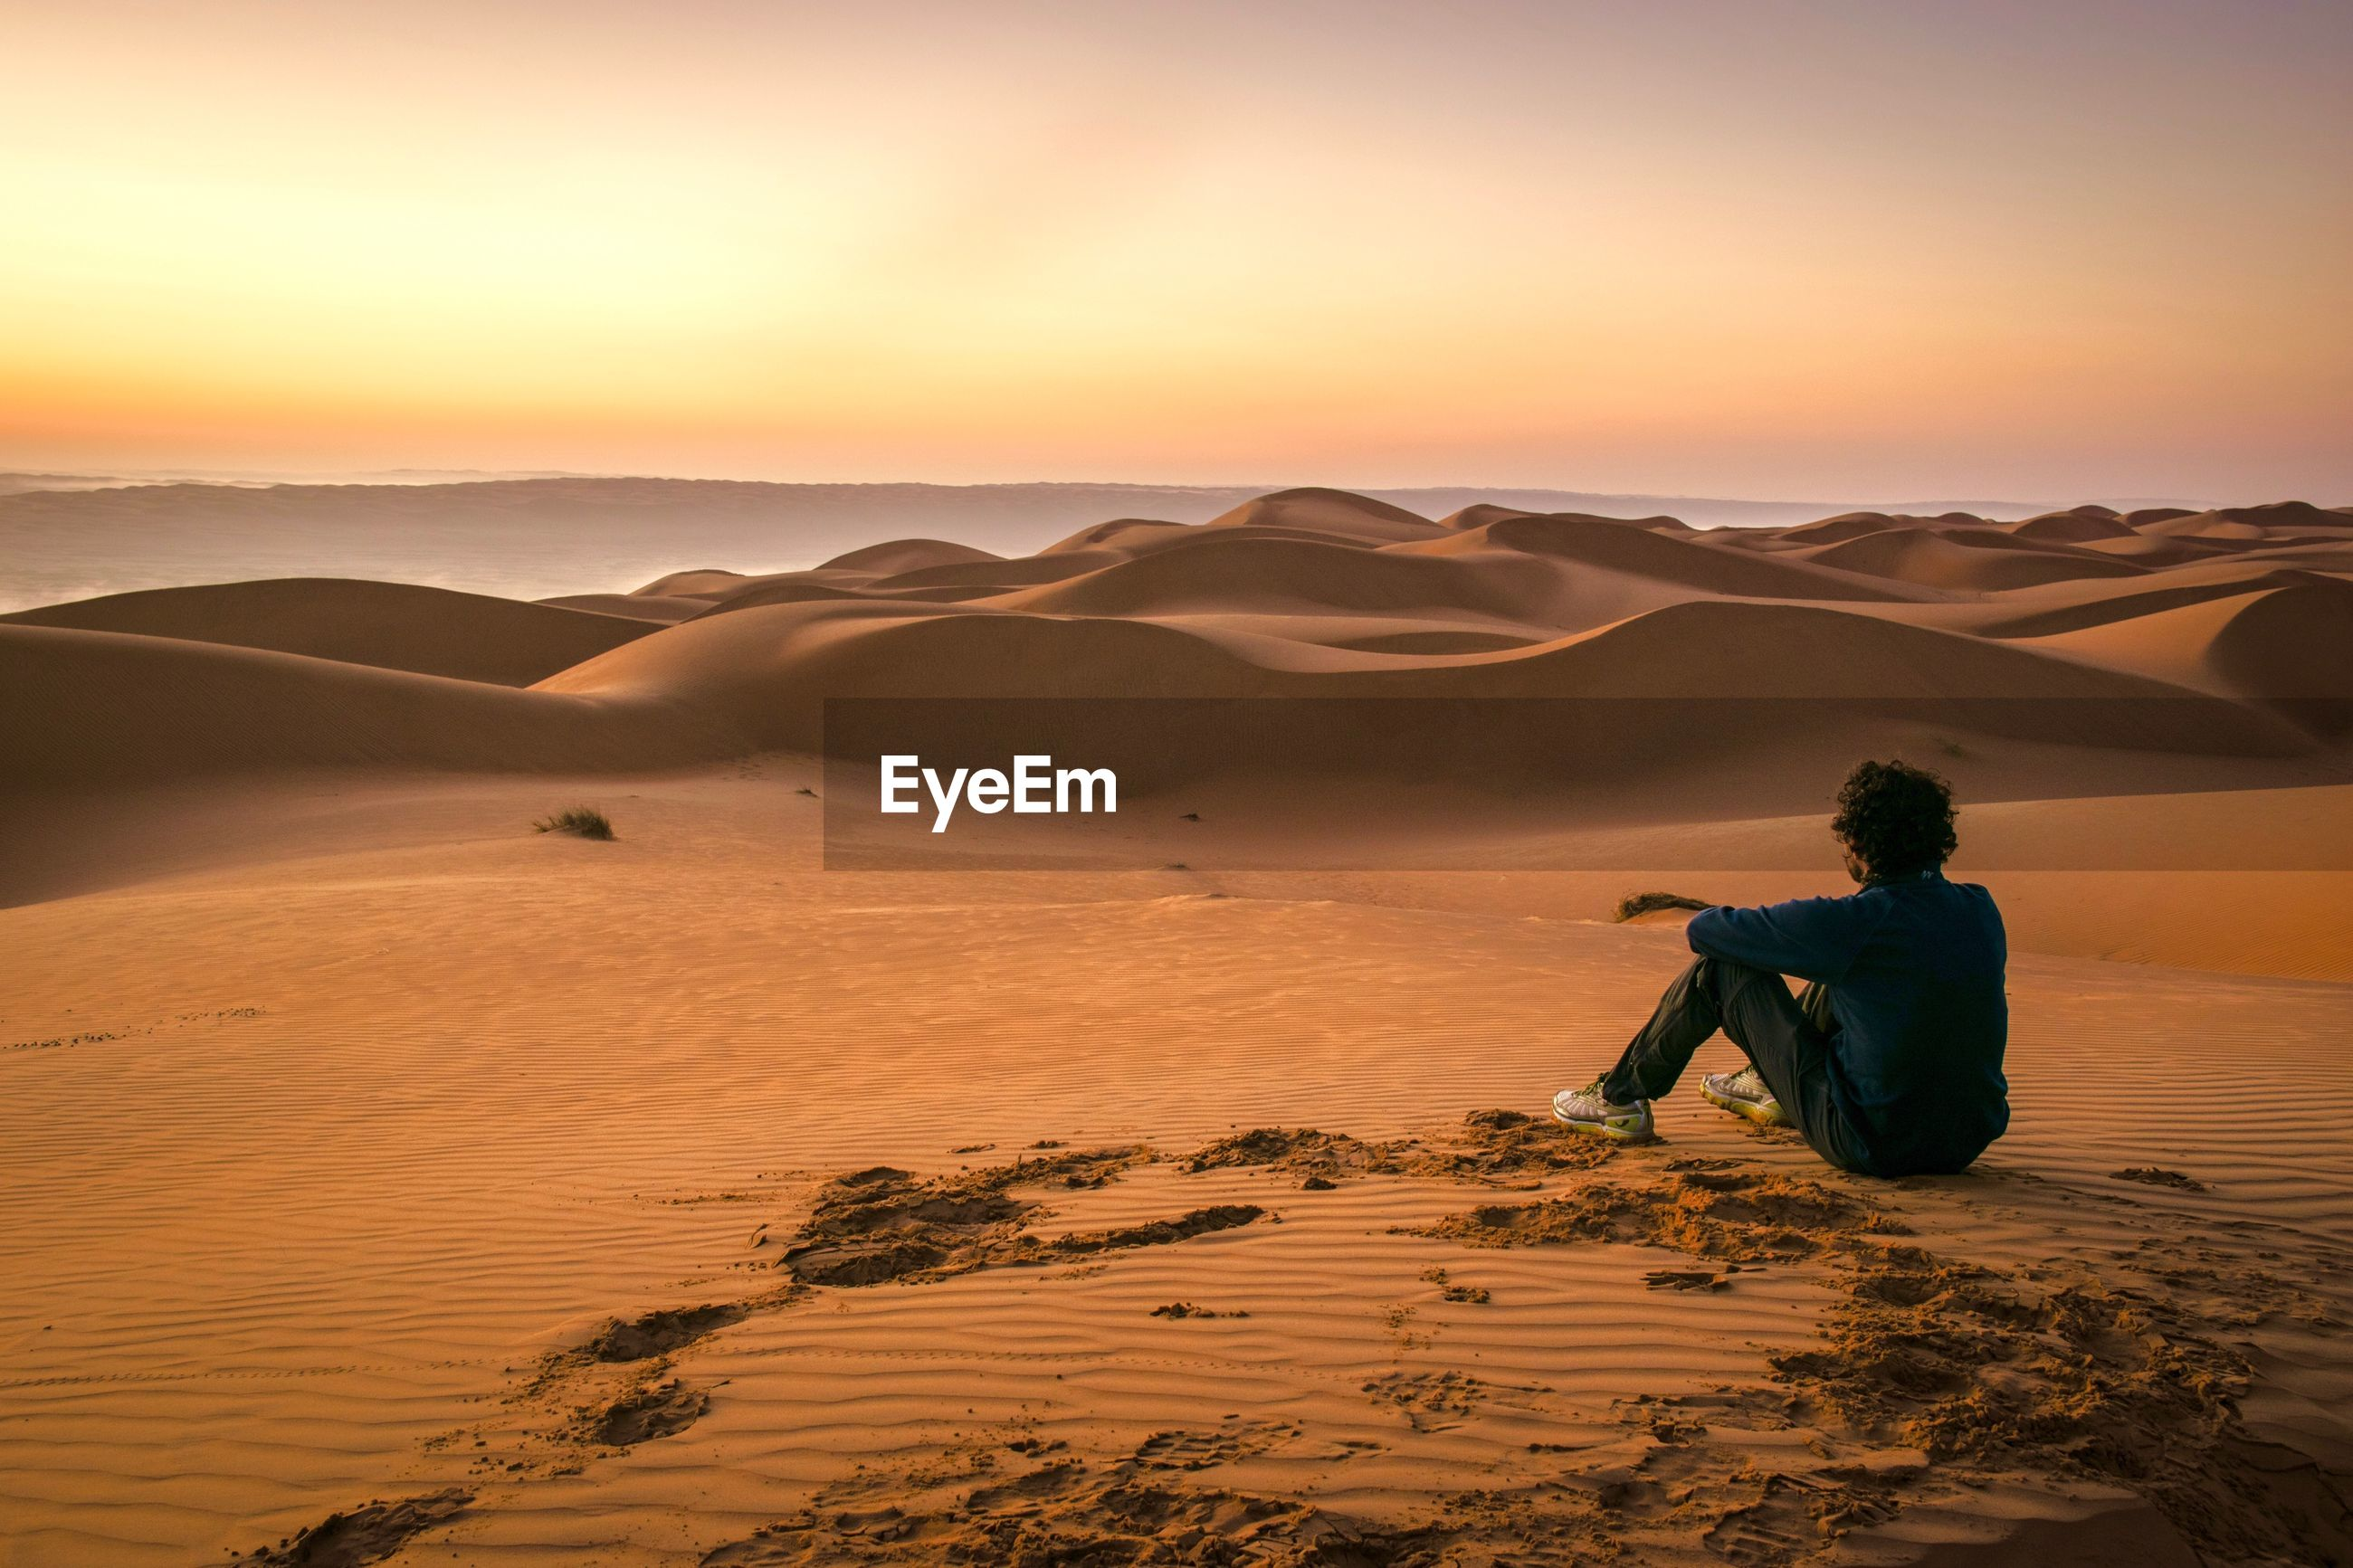 Man on sand dune in desert against sky during sunset